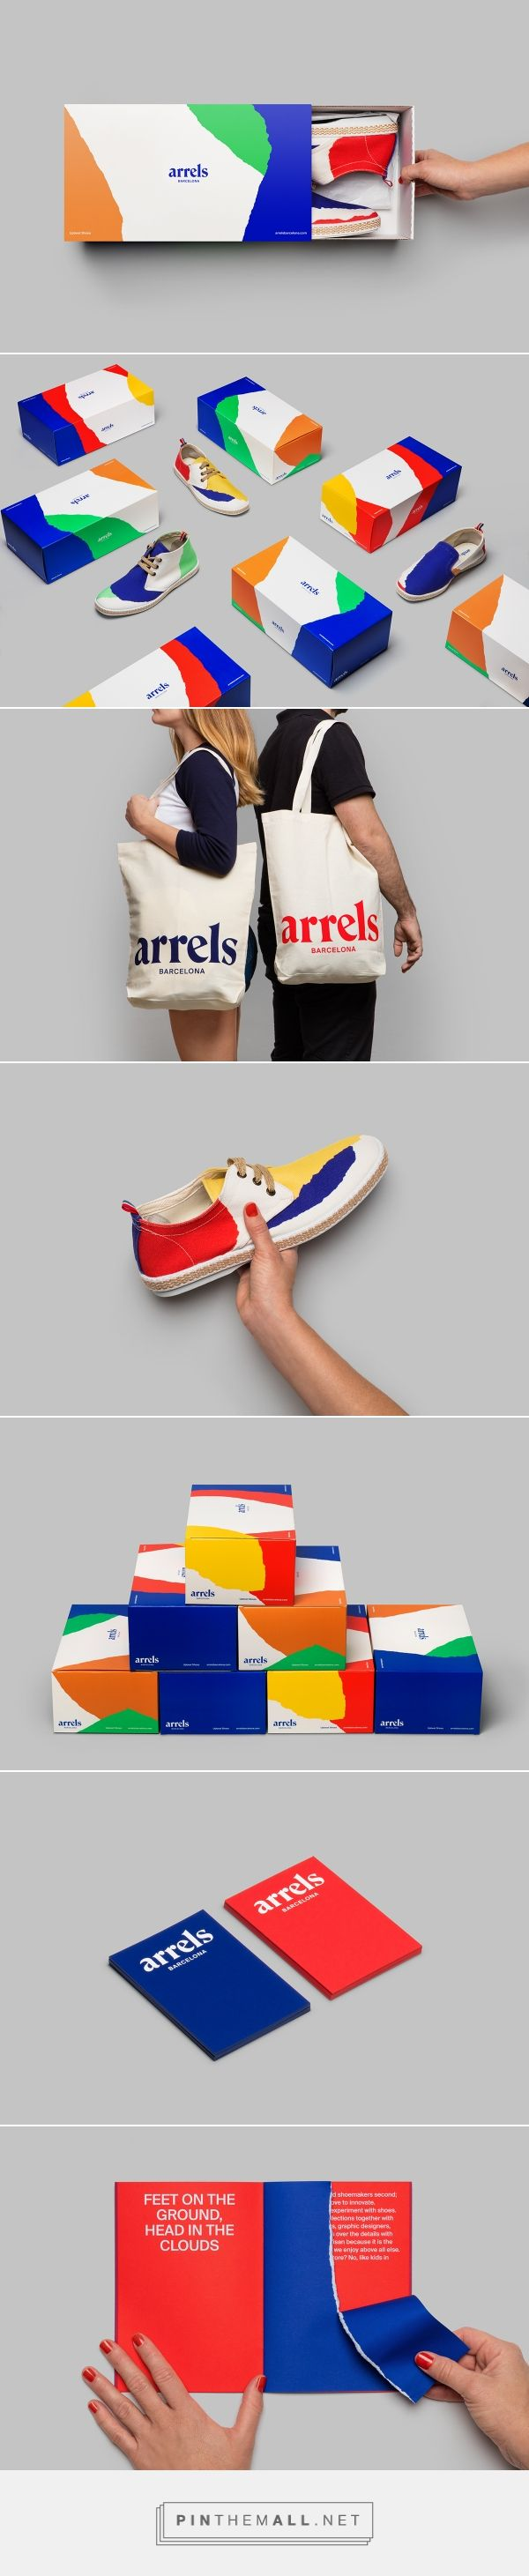 "Arrels packaging on Behance curated by Packaging Diva PD. Arrels, which means ""roots"" in English, is a Barcelona based footwear brand making shoes for the urban market."